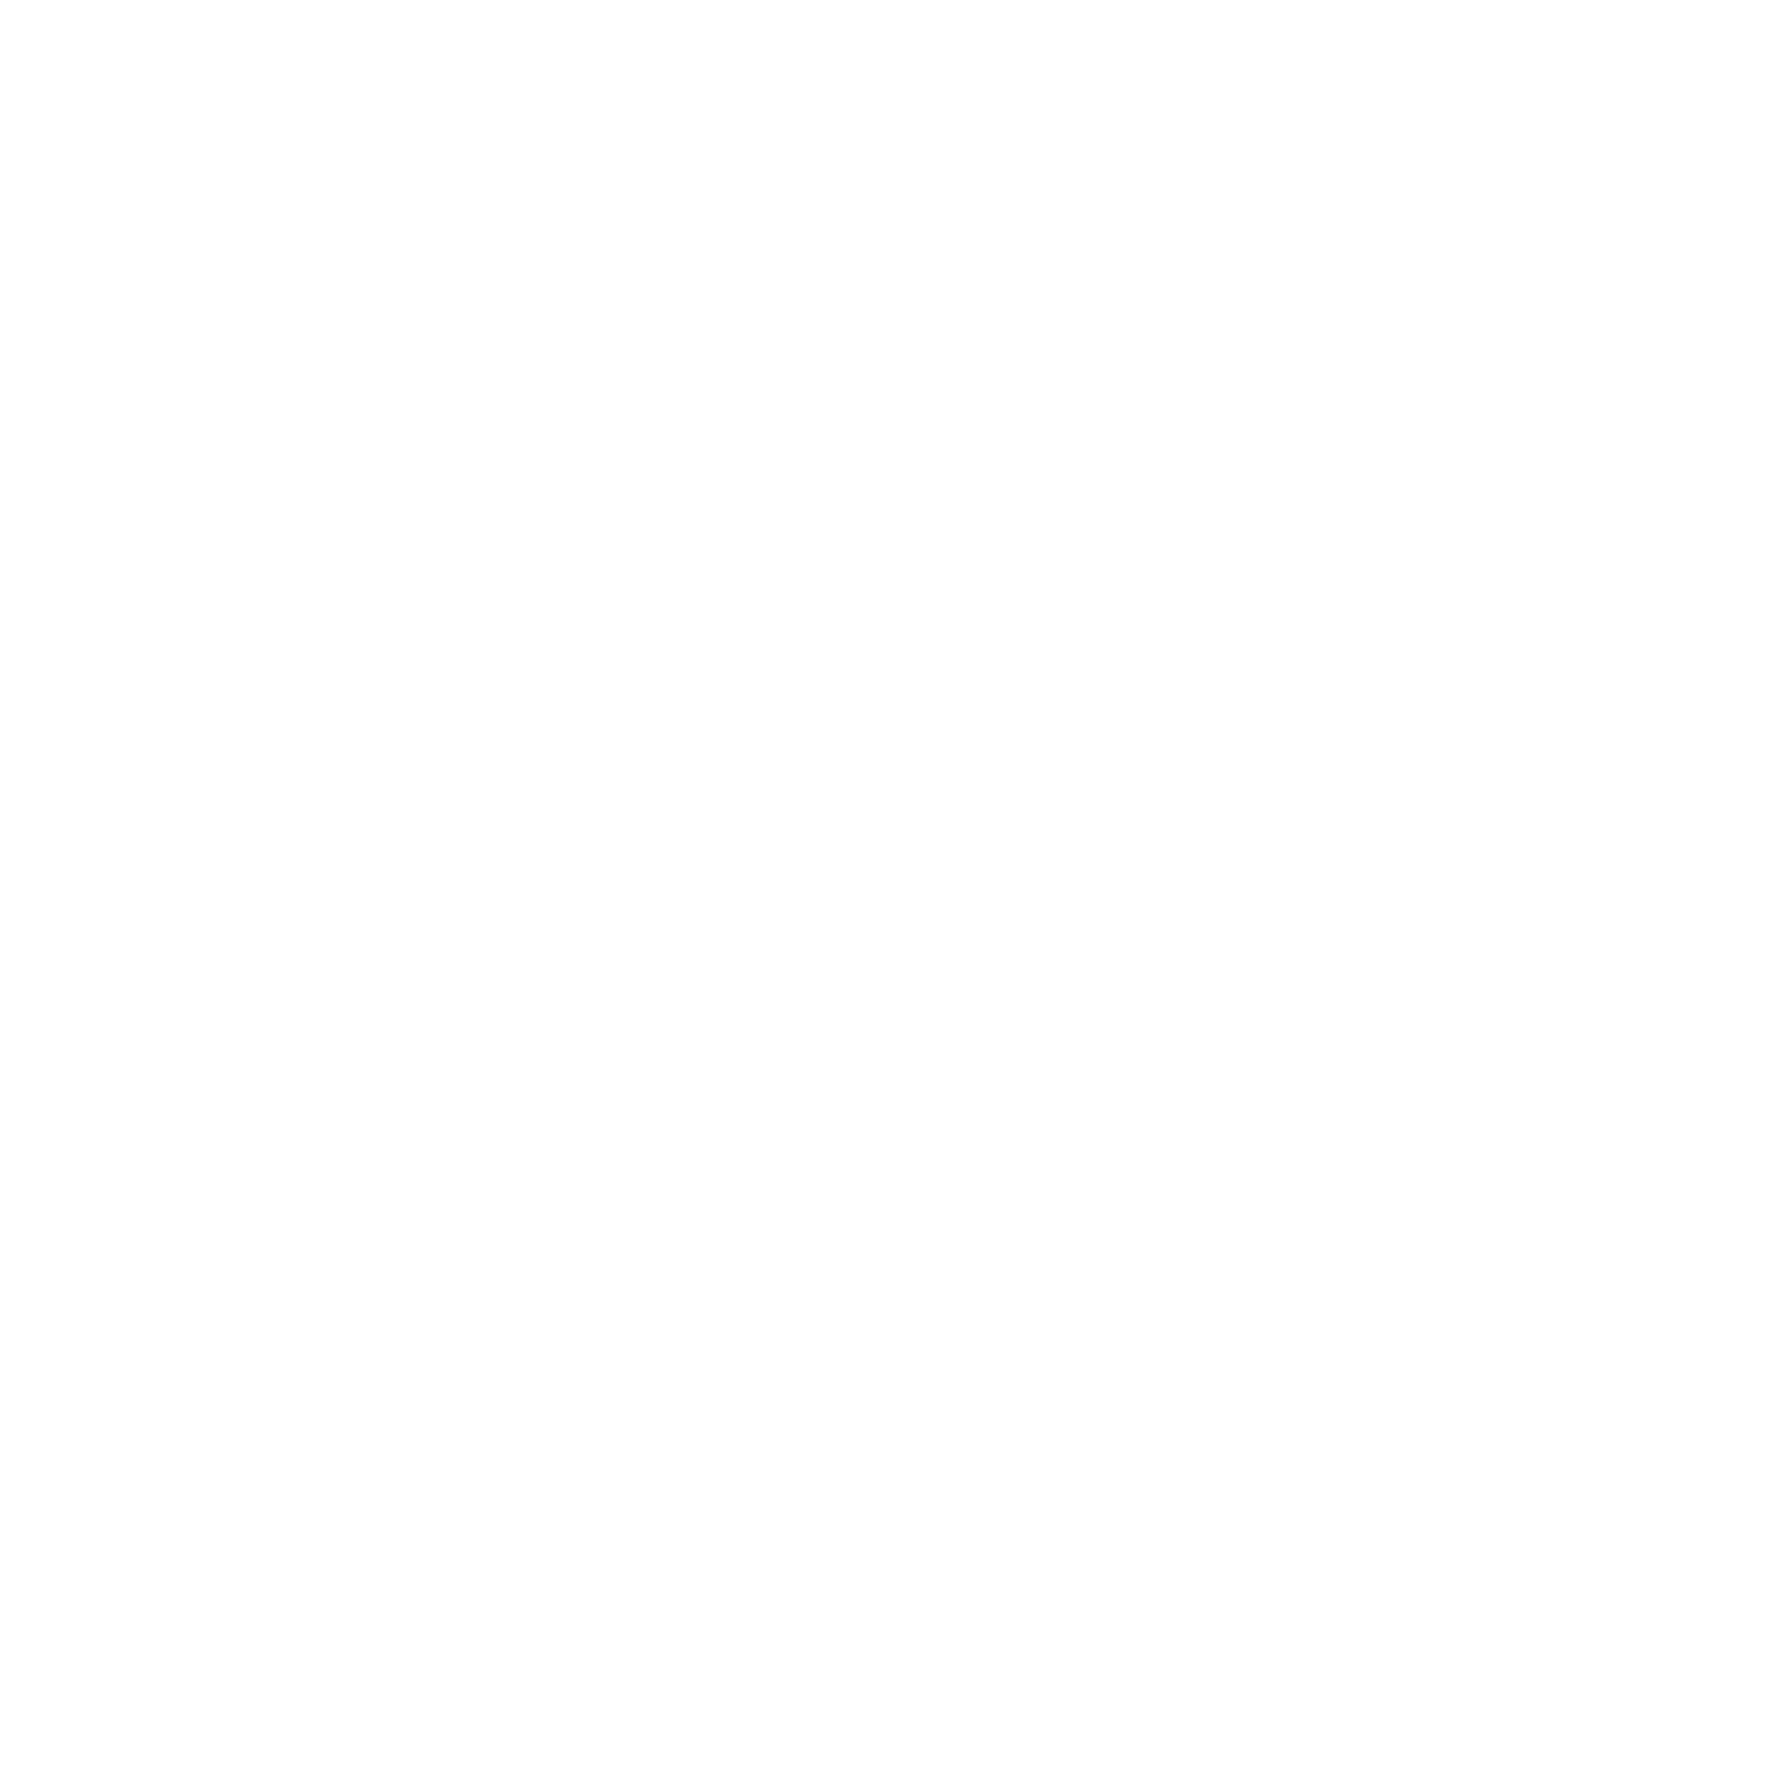 tuv logo iso27001 white - Security